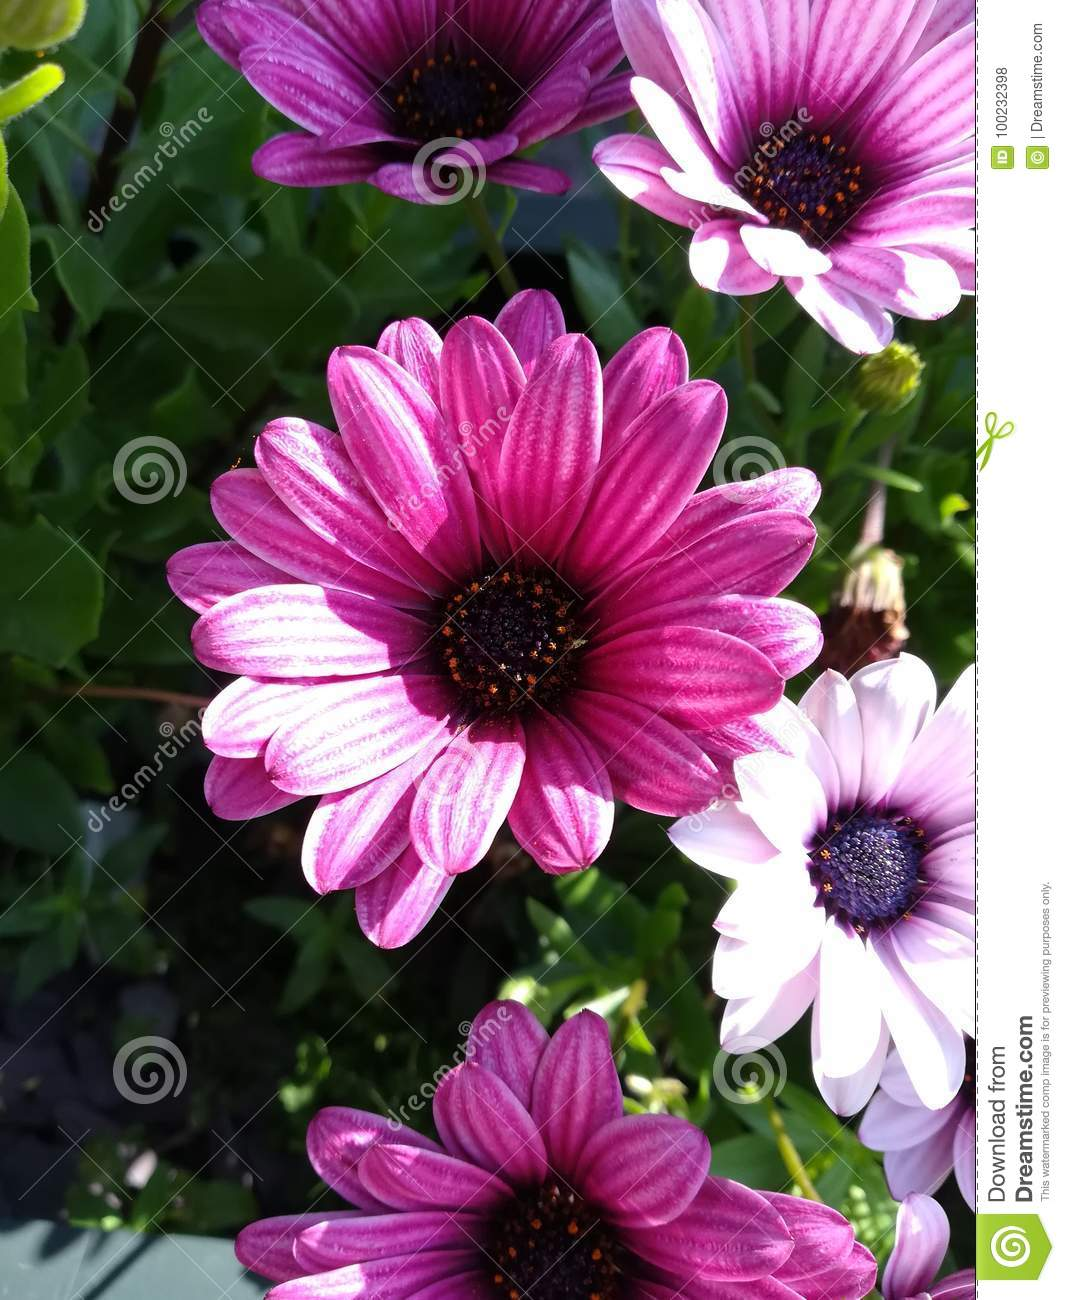 Flower settings stock photo image of chrysanths daisy 100232398 many diffrent types and settings of flowers in diffrent lighting izmirmasajfo